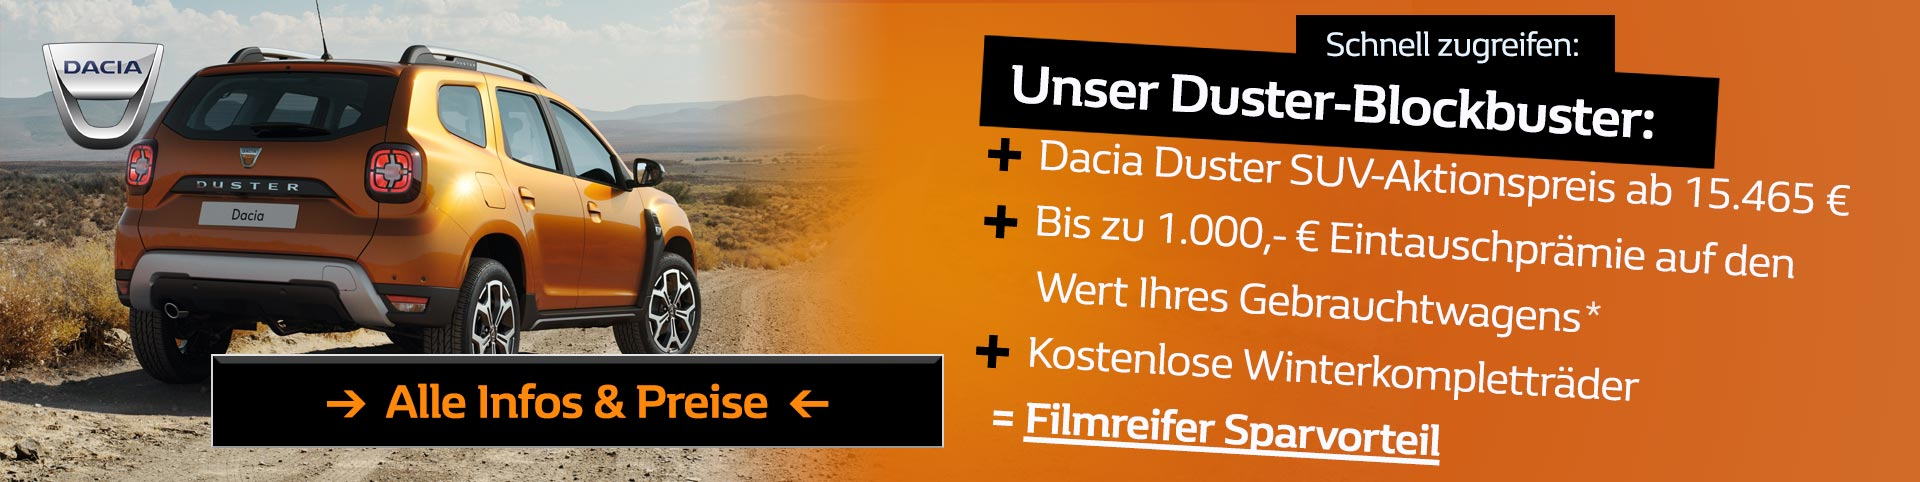 Dacia Duster Blockbuster Angebot